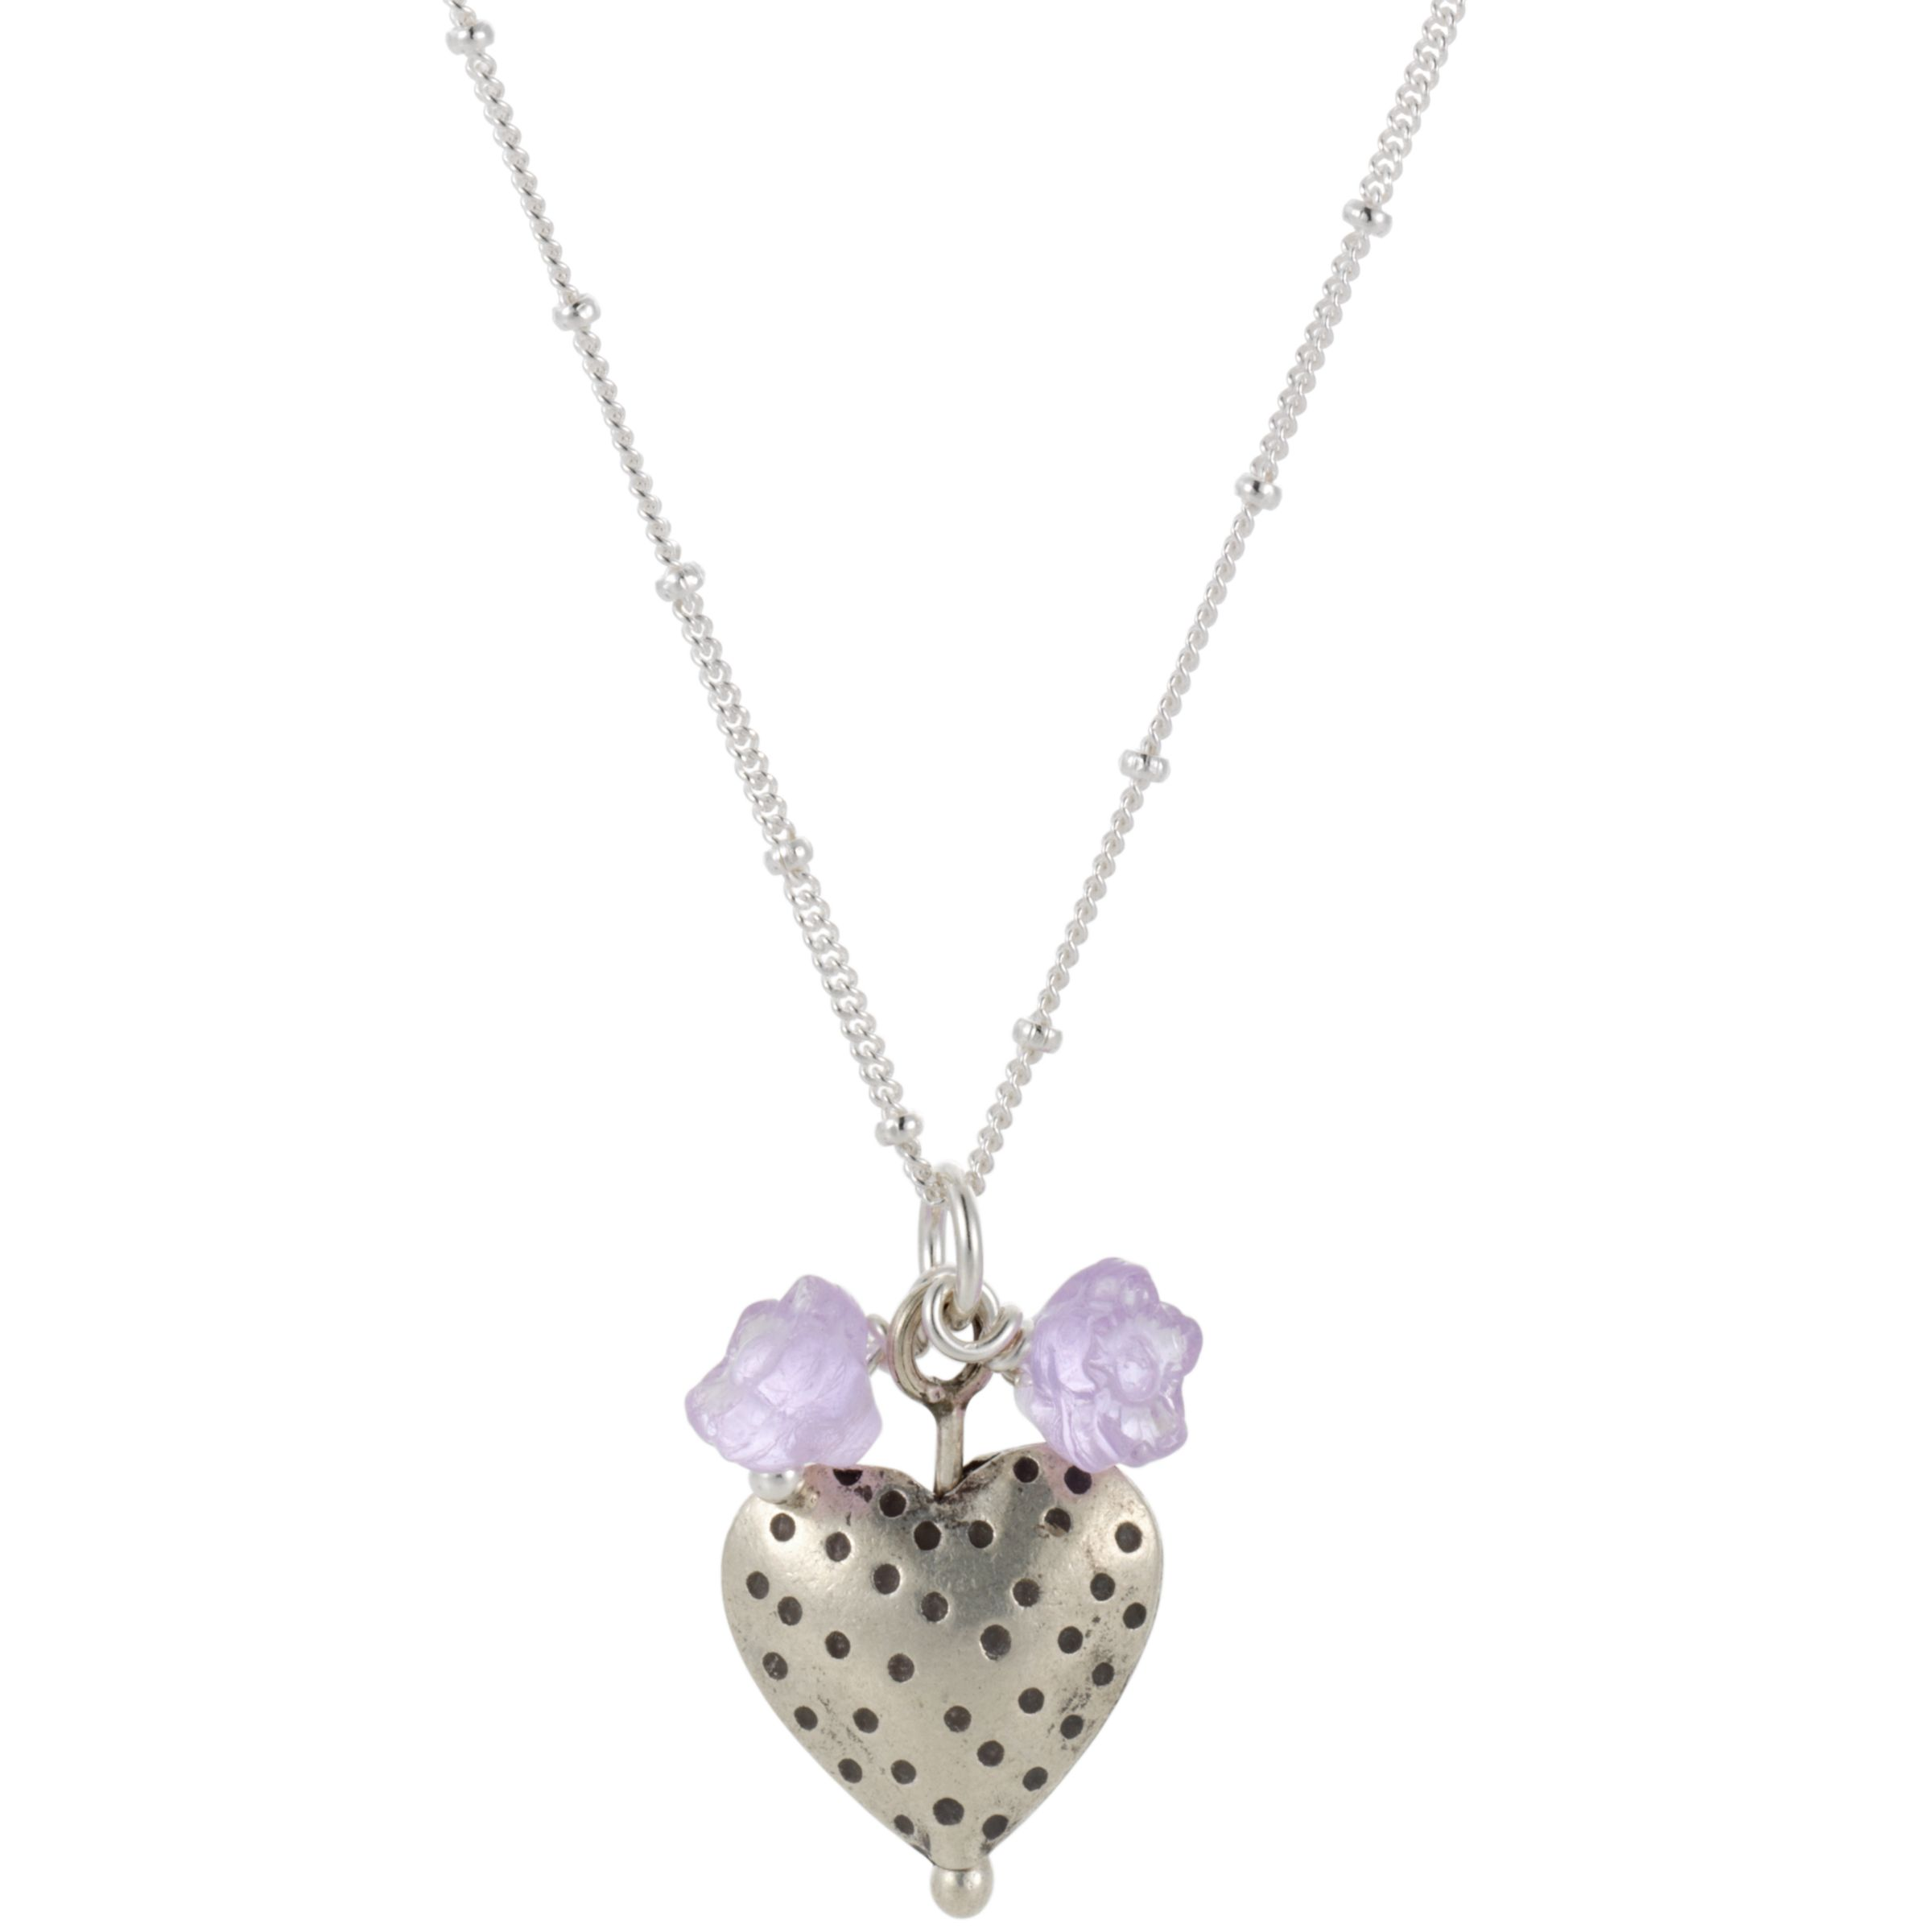 Martick Dotty Heart Blossom Pendant Necklace